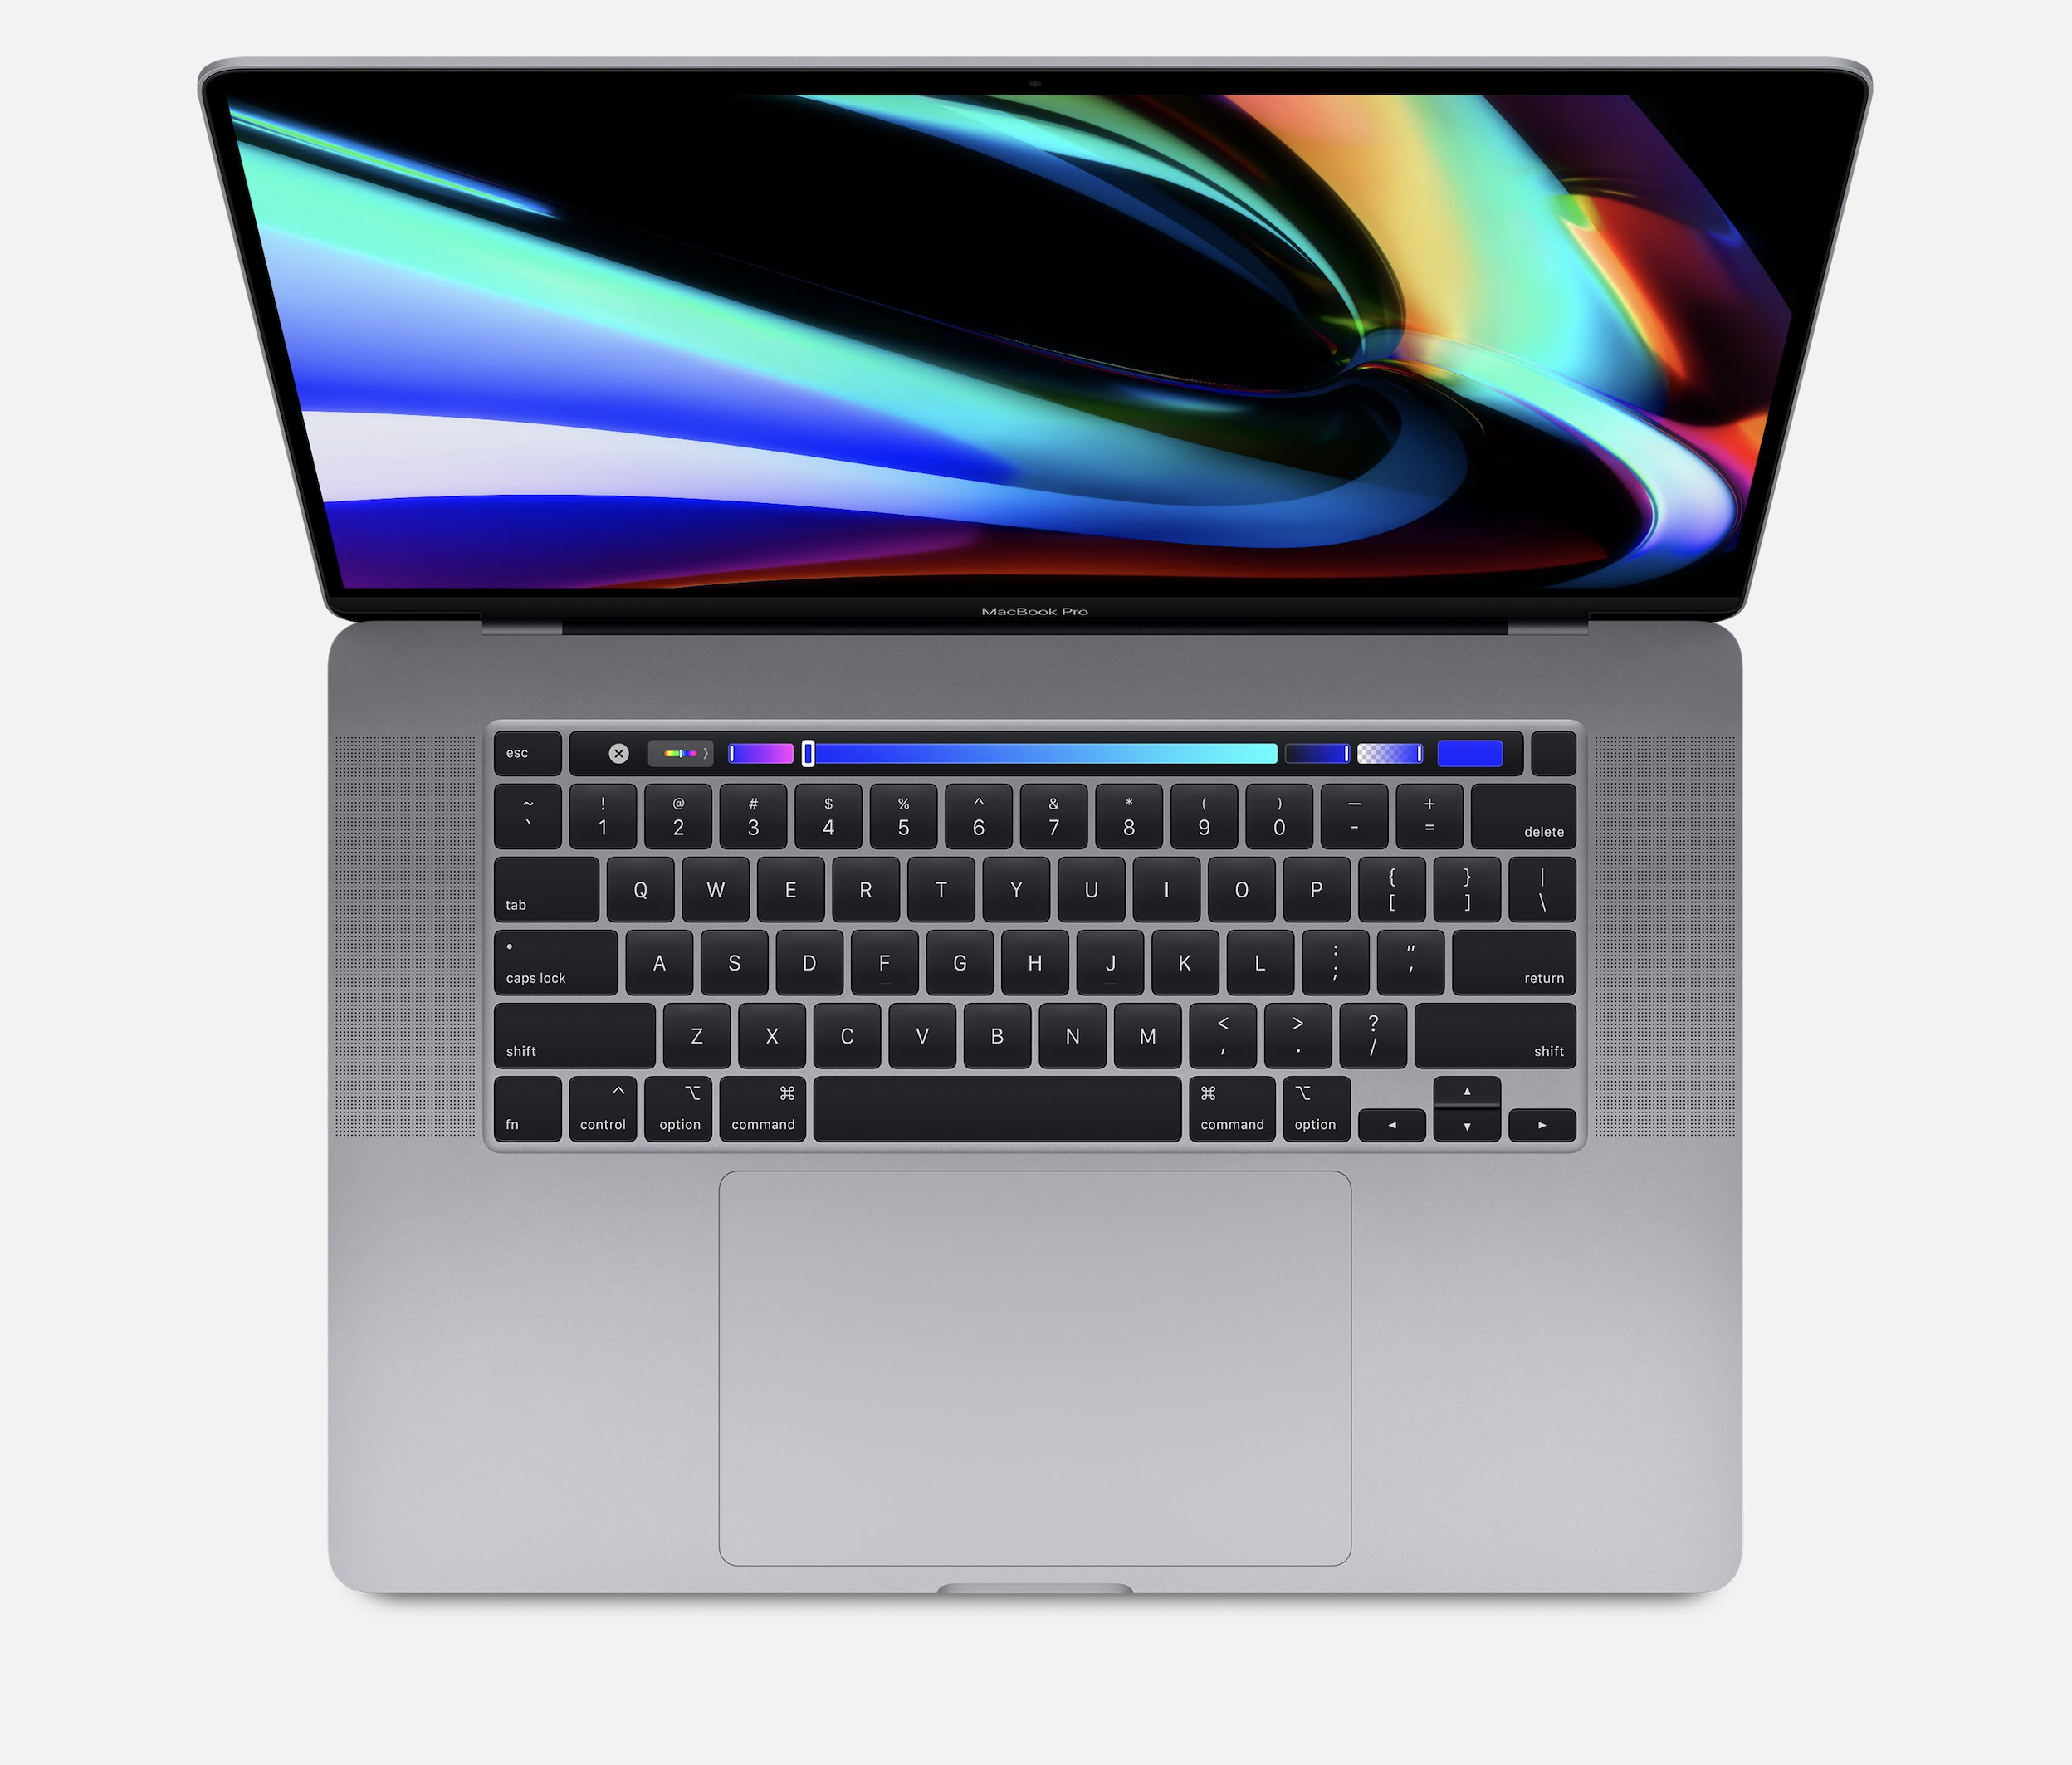 MacBook Pro 16in w/Touch Bar 2.4GHz i9 8-core 16GB/512GB - Space Gray CTO at Small Dog Electronics